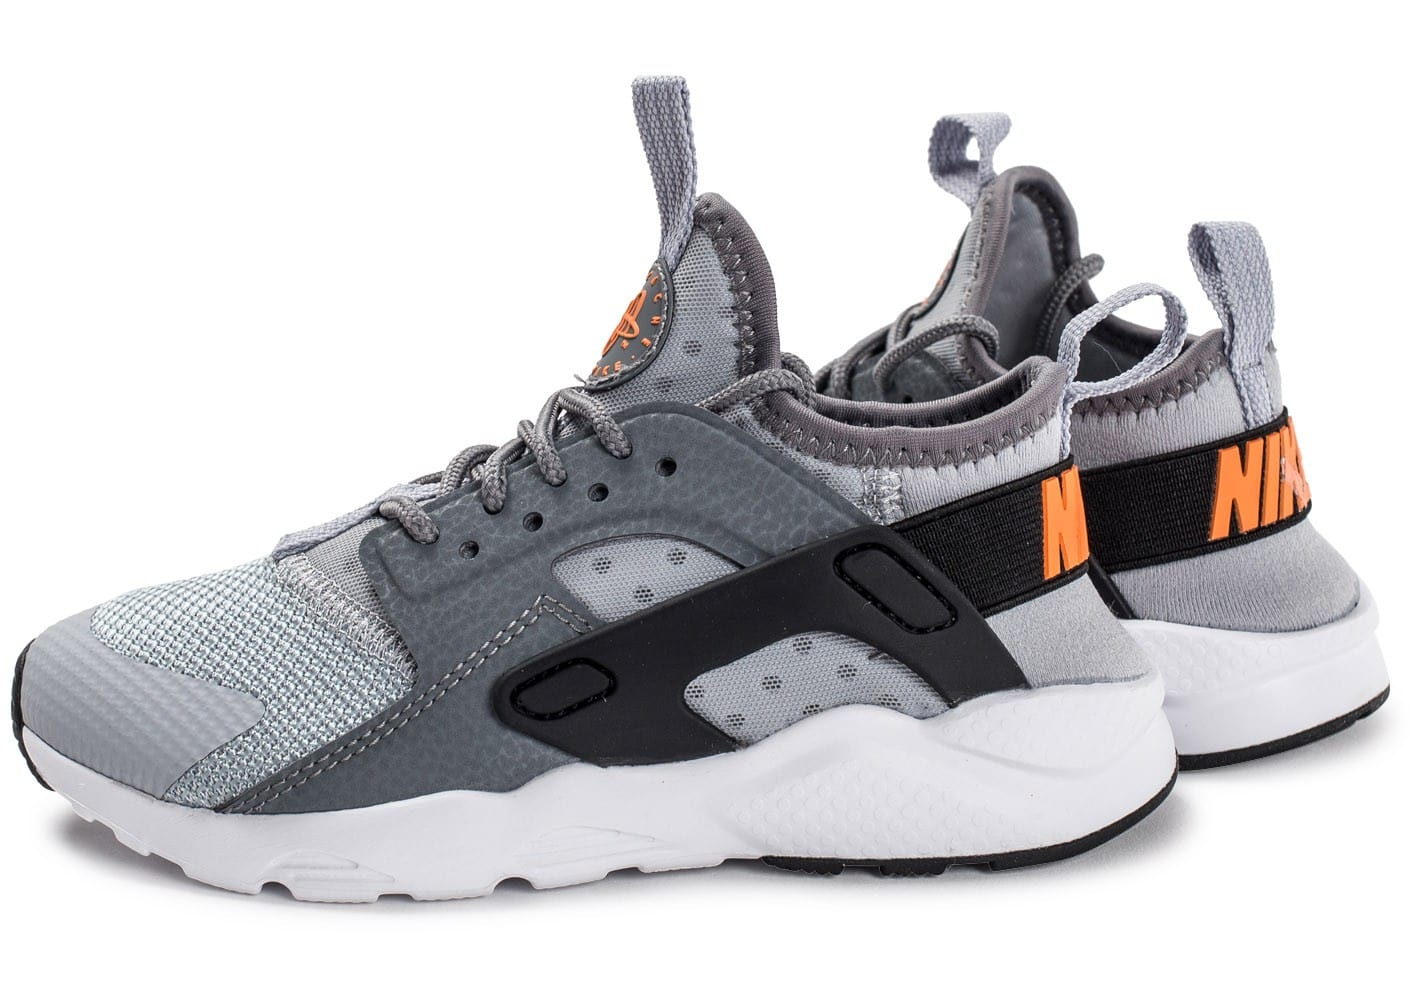 new product 96738 27bc9 baskets huarache enfant, Nike Air Huarache enfants,Baskets Nike Huarache ,  toutes les chaussures